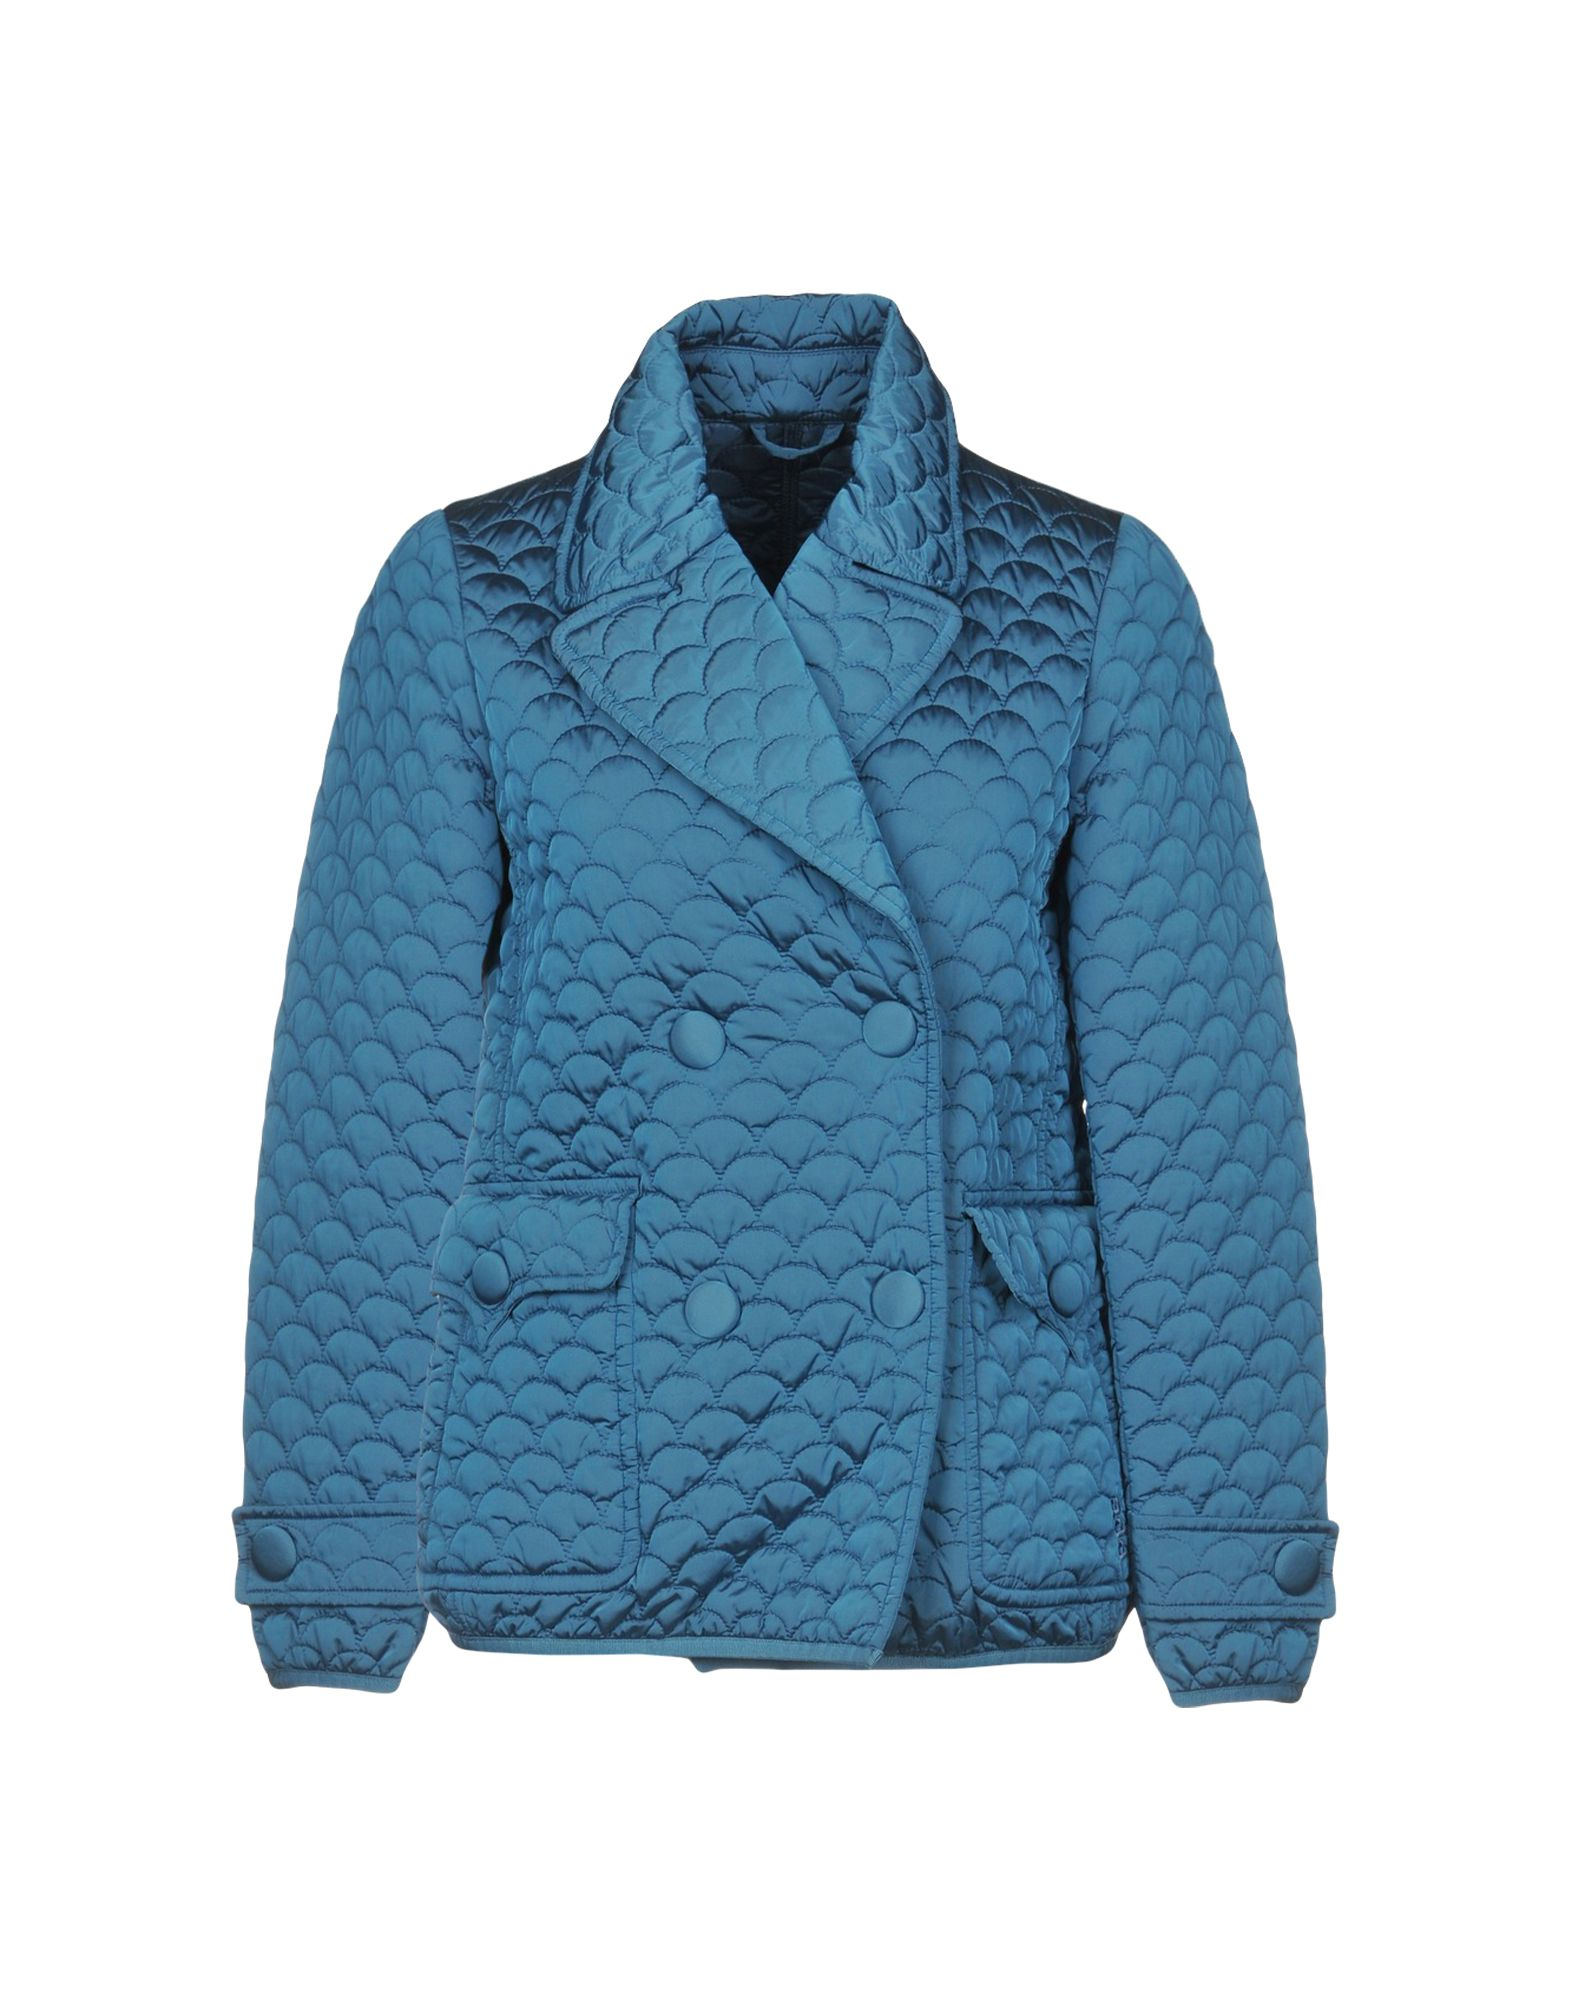 ADD Double Breasted Pea Coat, Pastel Blue